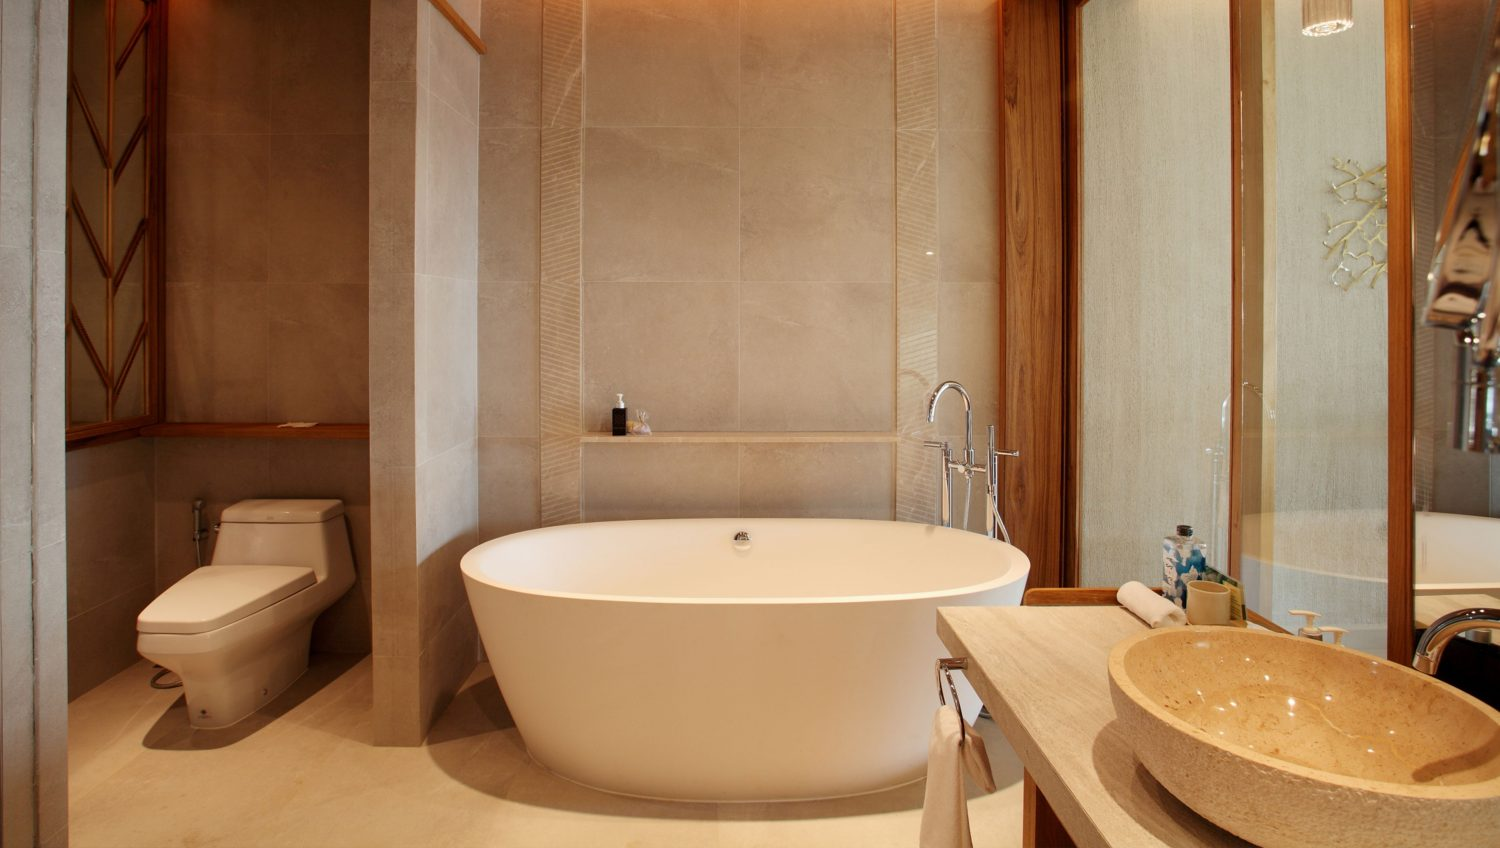 6-Pool-Suite-West-with-Private-Pool-Sri-Panwa-Luxury-Hotel-Phuket1